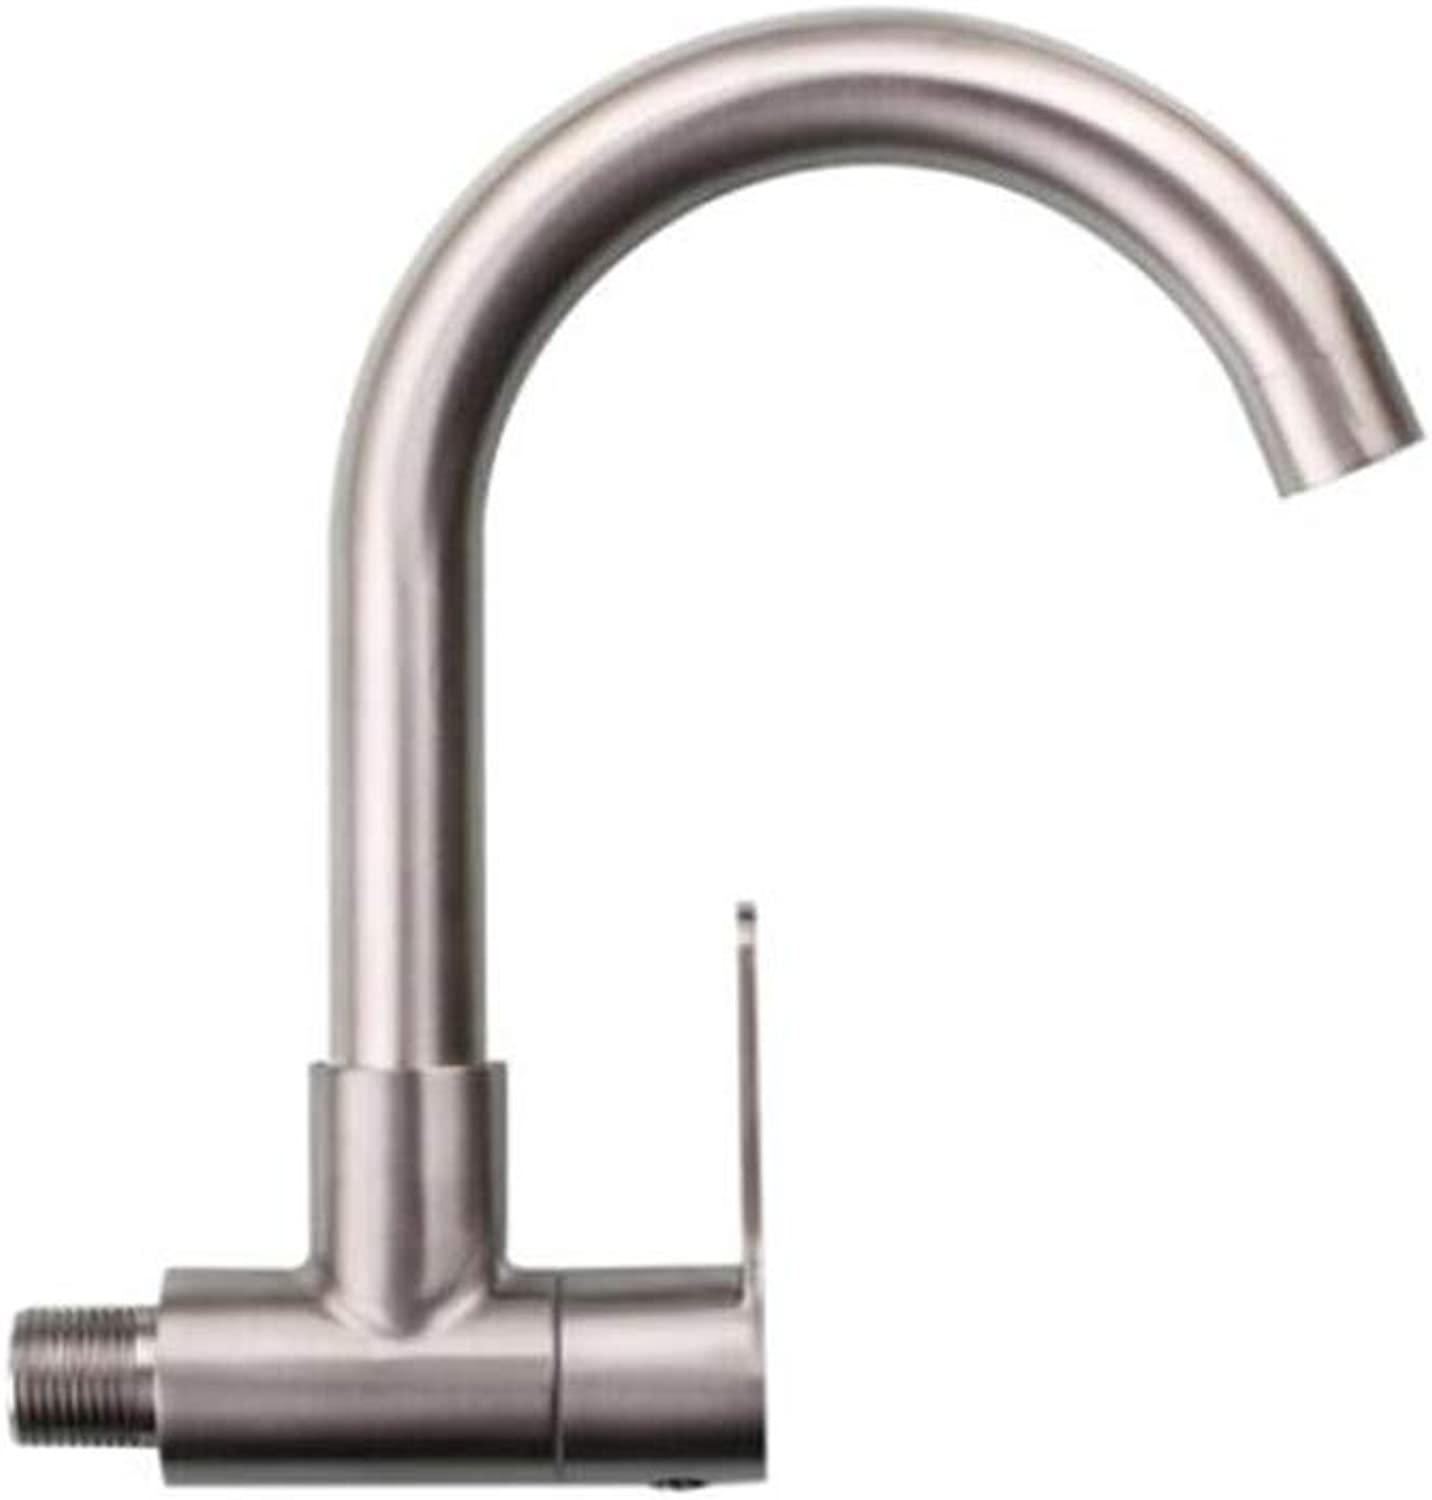 Bathroom Sink Basin Lever Mixer Tap Su304 Stainless Steel Single-Cooled Wall Basin Faucet Wall Washbasin 4